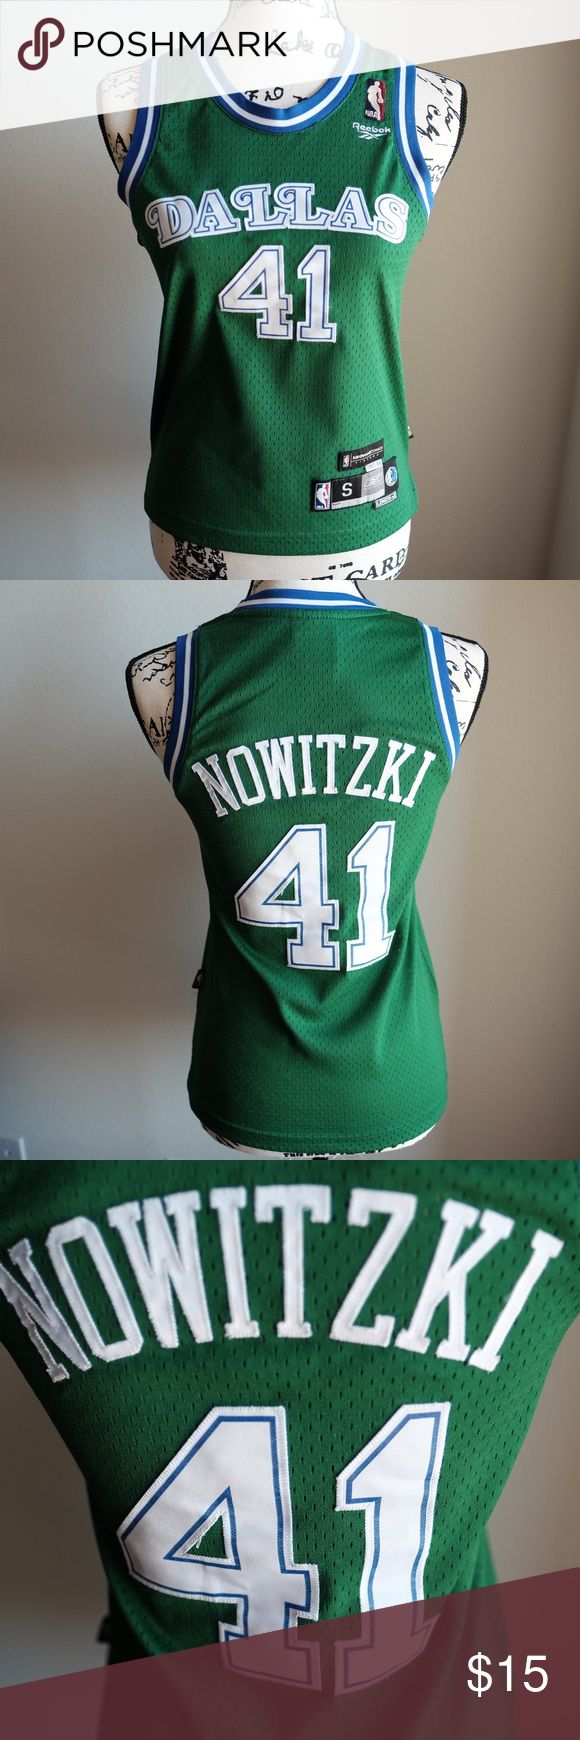 """Dallas Mavericks Nowitzki Green Basketball Jersey #41 Dirk Nowitzki.  Green alternate jersey.  Stitched lettering.  Size Youth Small, however I wore it as a fitted jersey.  (Fits like Women's XS/S).  16"""" Bust.  22"""" Front Length.  24.5"""" Back Length. Reebok Shirts & Tops"""